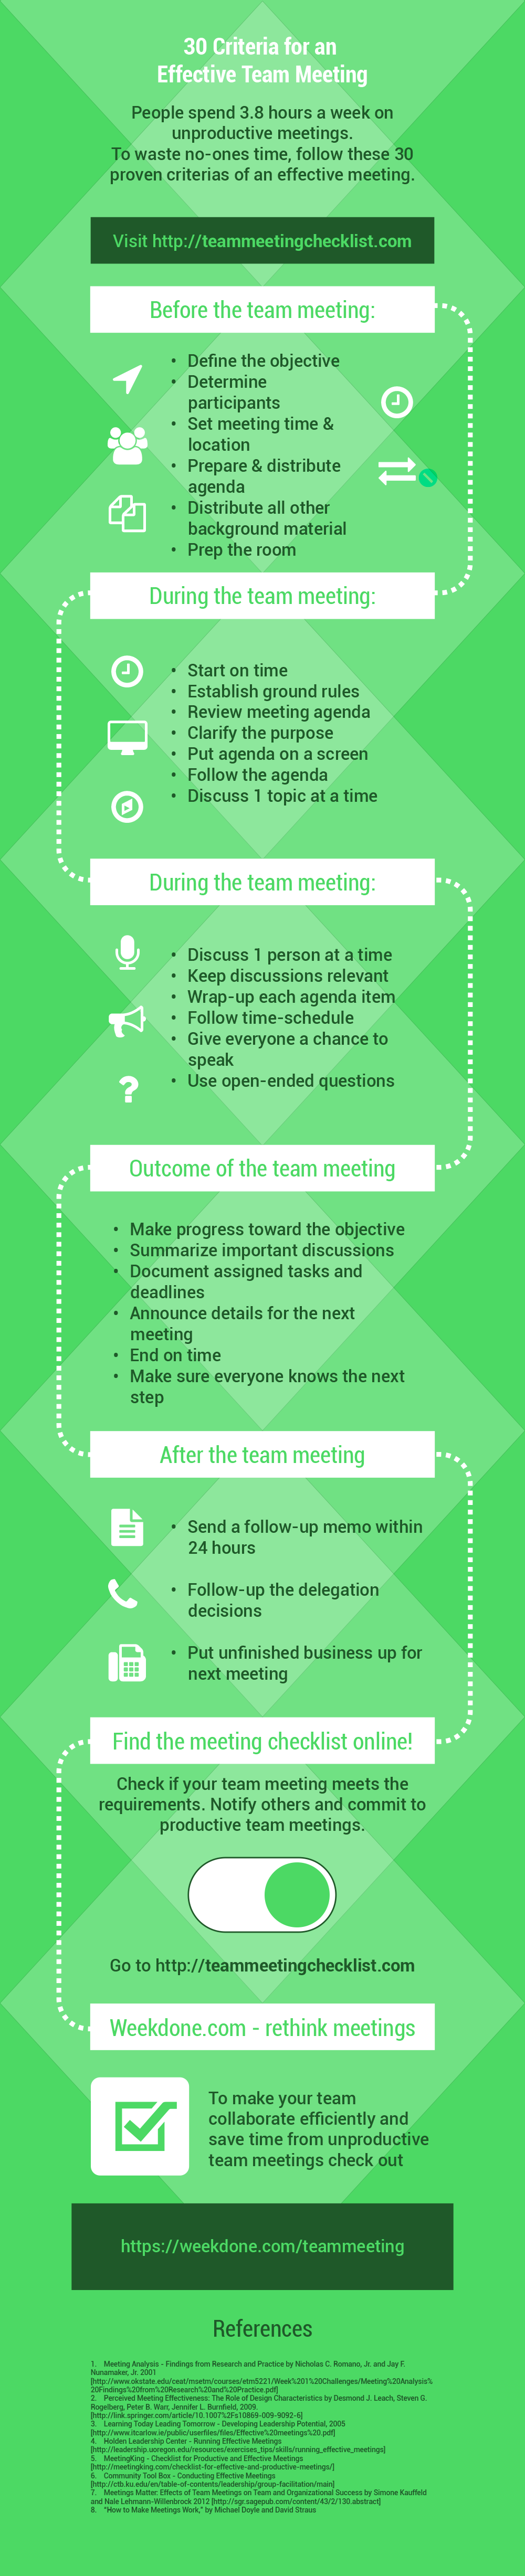 30 Criteria for an Effective Team Meeting